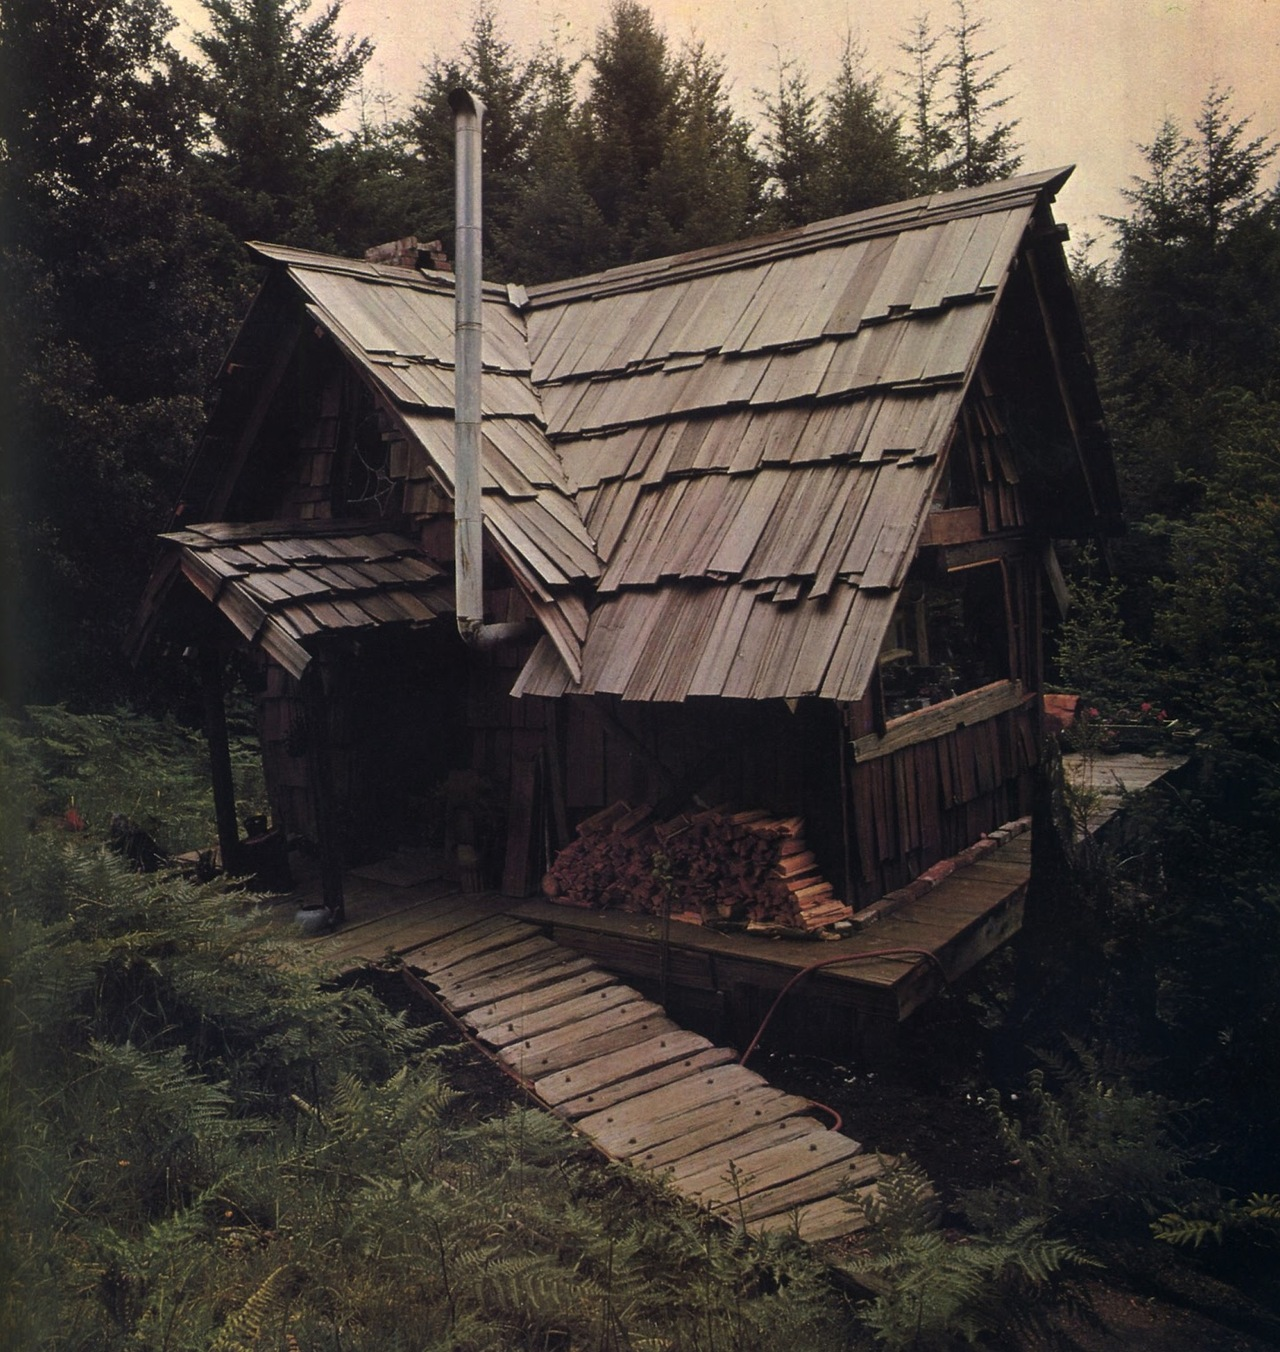 Handmade Houses by Art Boericke and Barry Shapiro